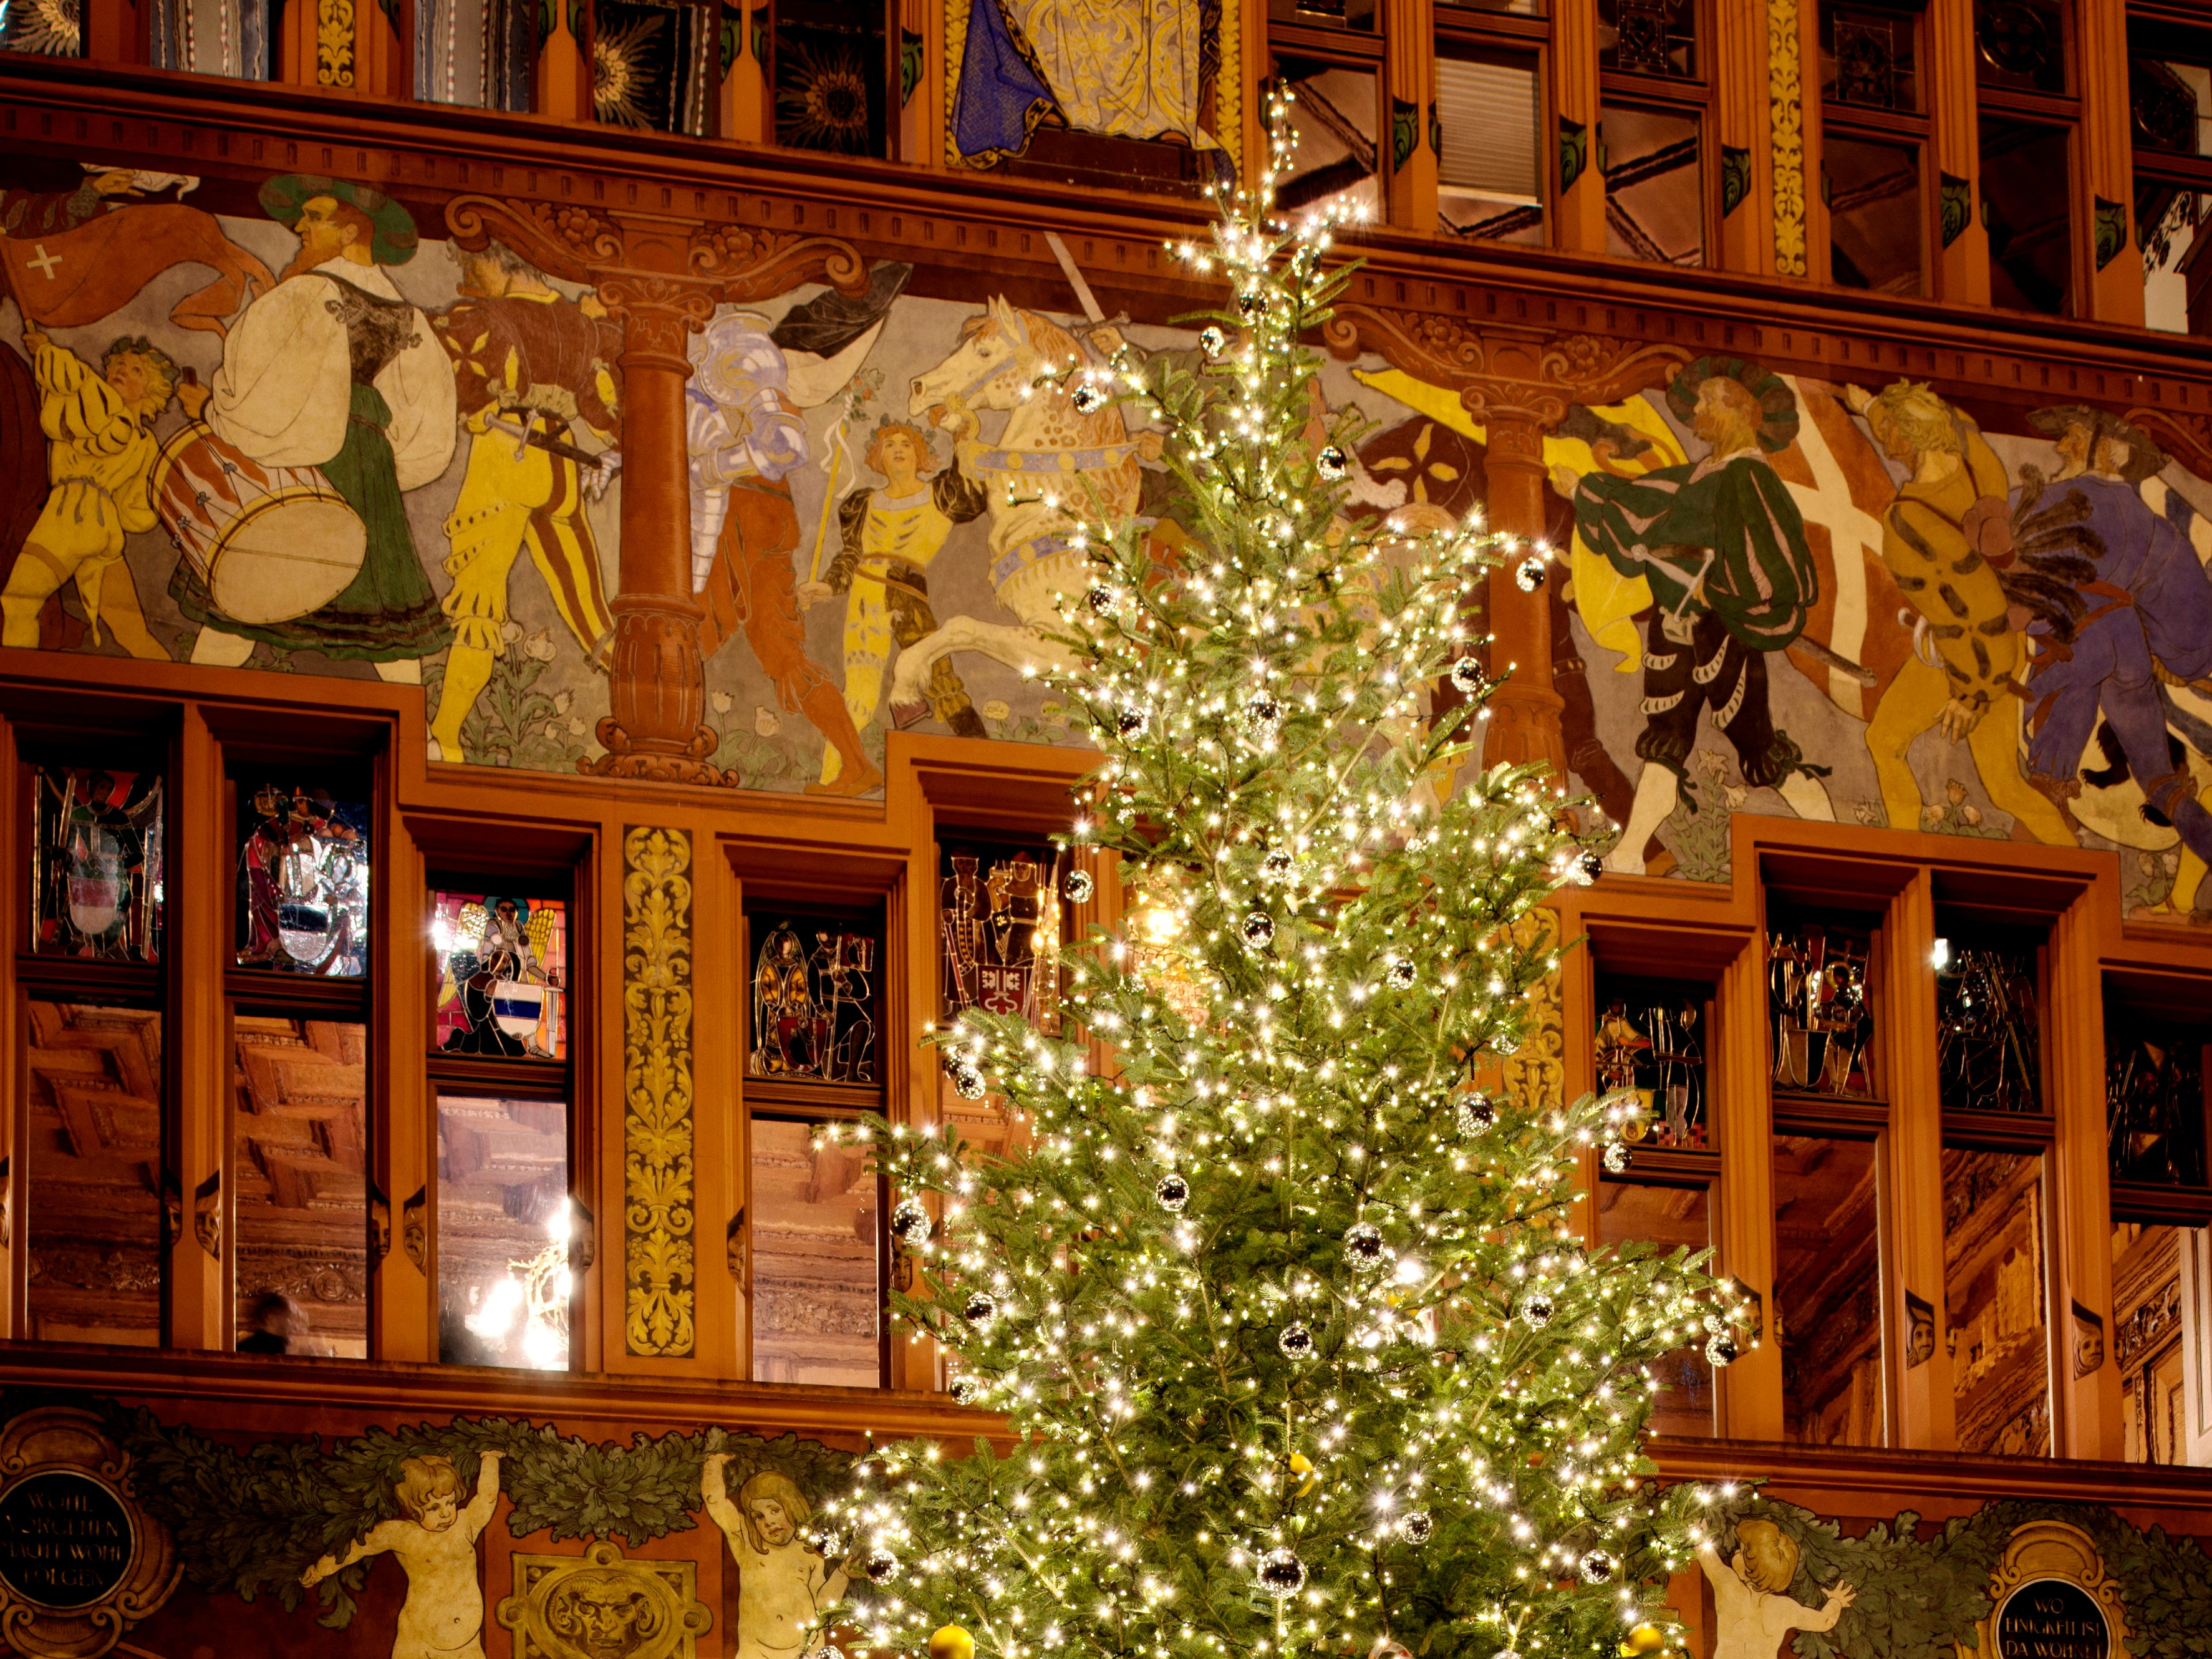 A beautifully lit Christmas tree stands in the City Hall's richly decorated inner court.